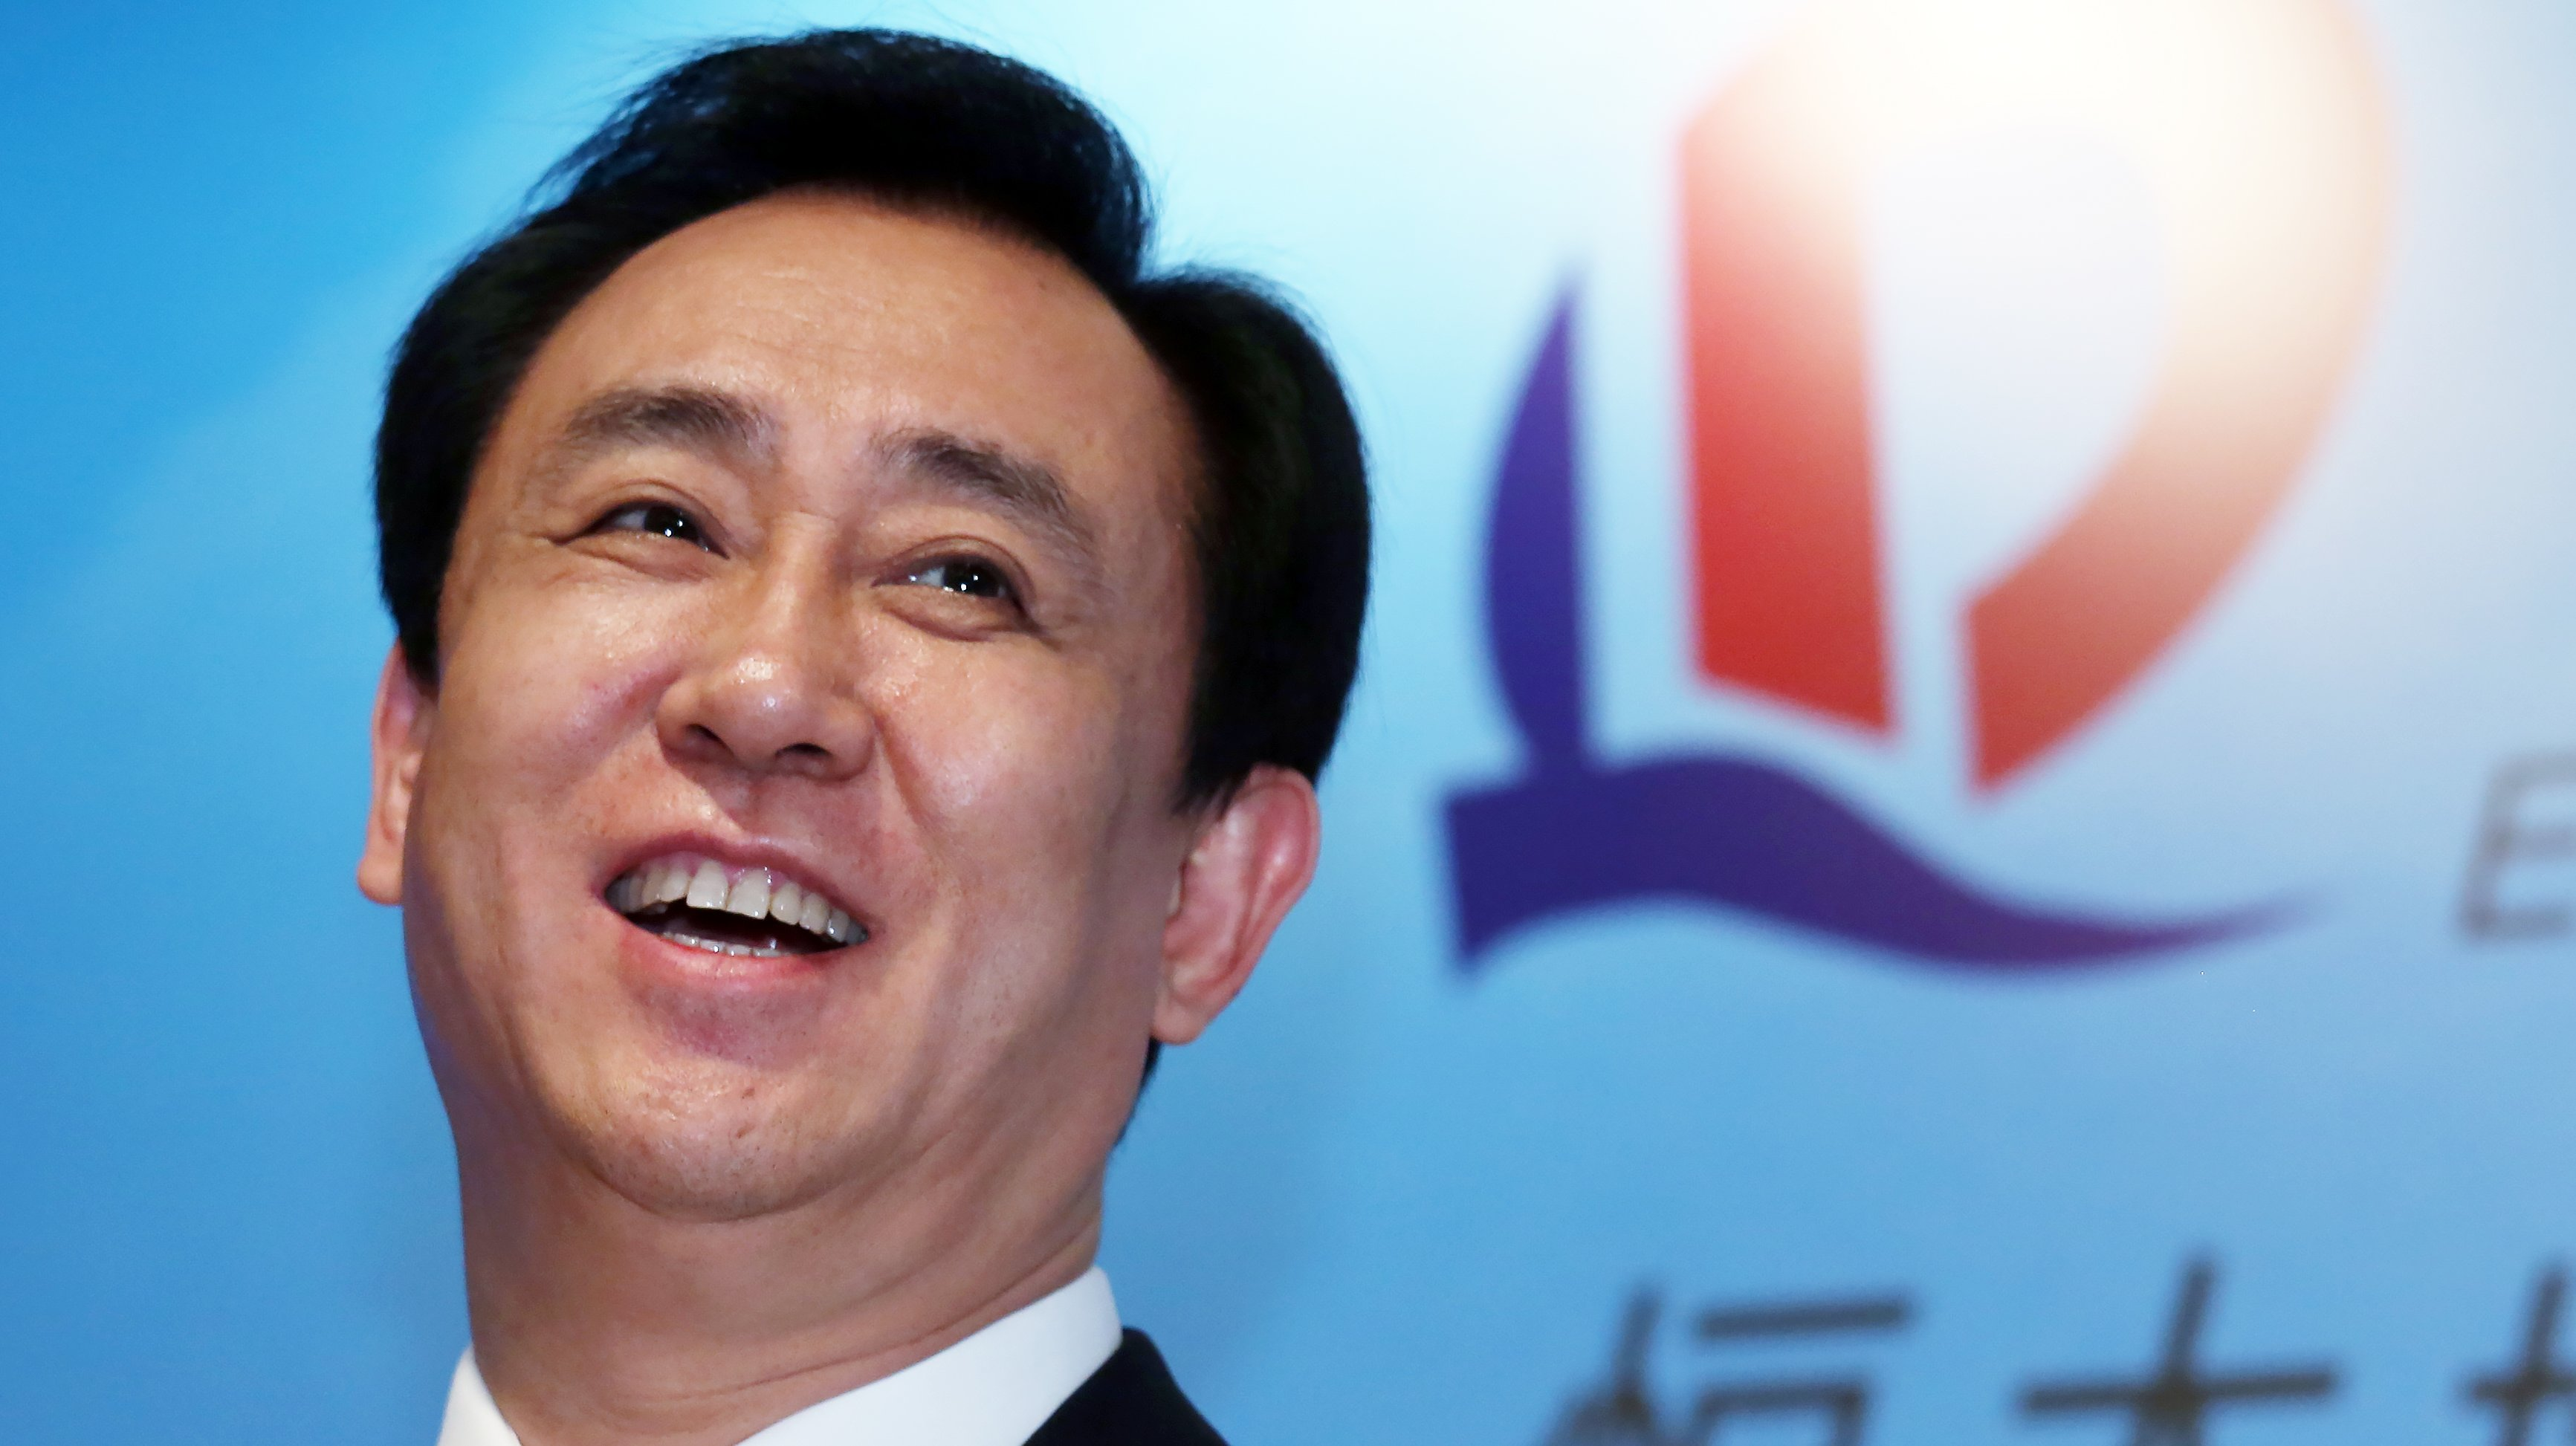 Evergrande Real Estate Group Chairman of the Board Hui Ka-yan attends Evergrande Real Estate result announcement at the JW Marriott in Admiralty. 29MAR16 SCMP/ Nora Tam